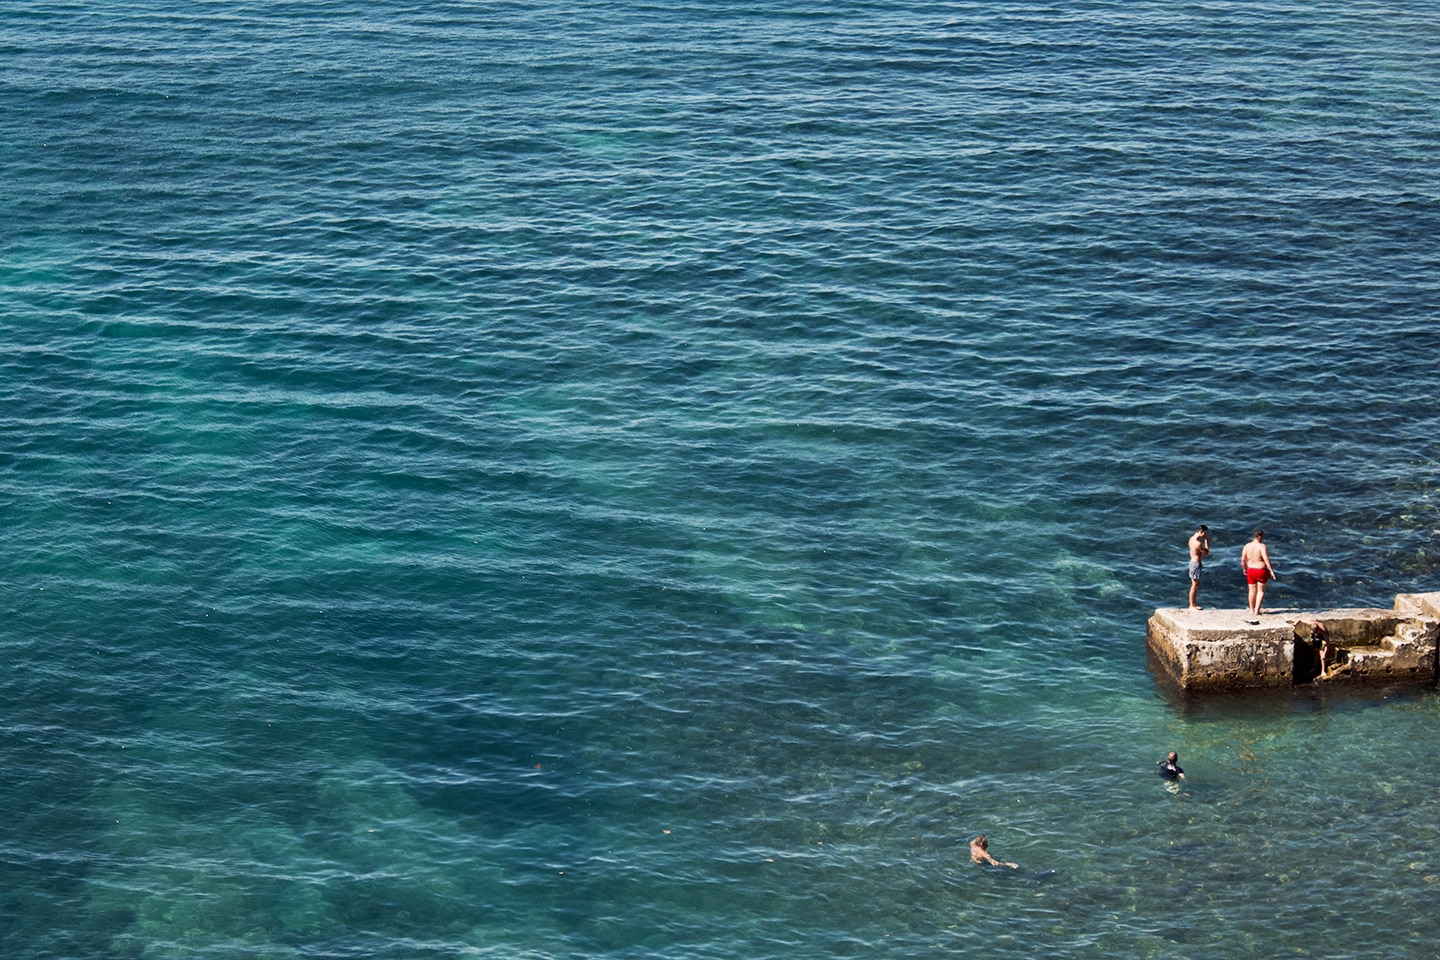 Group of boys enjoying the sea in Cassis - France